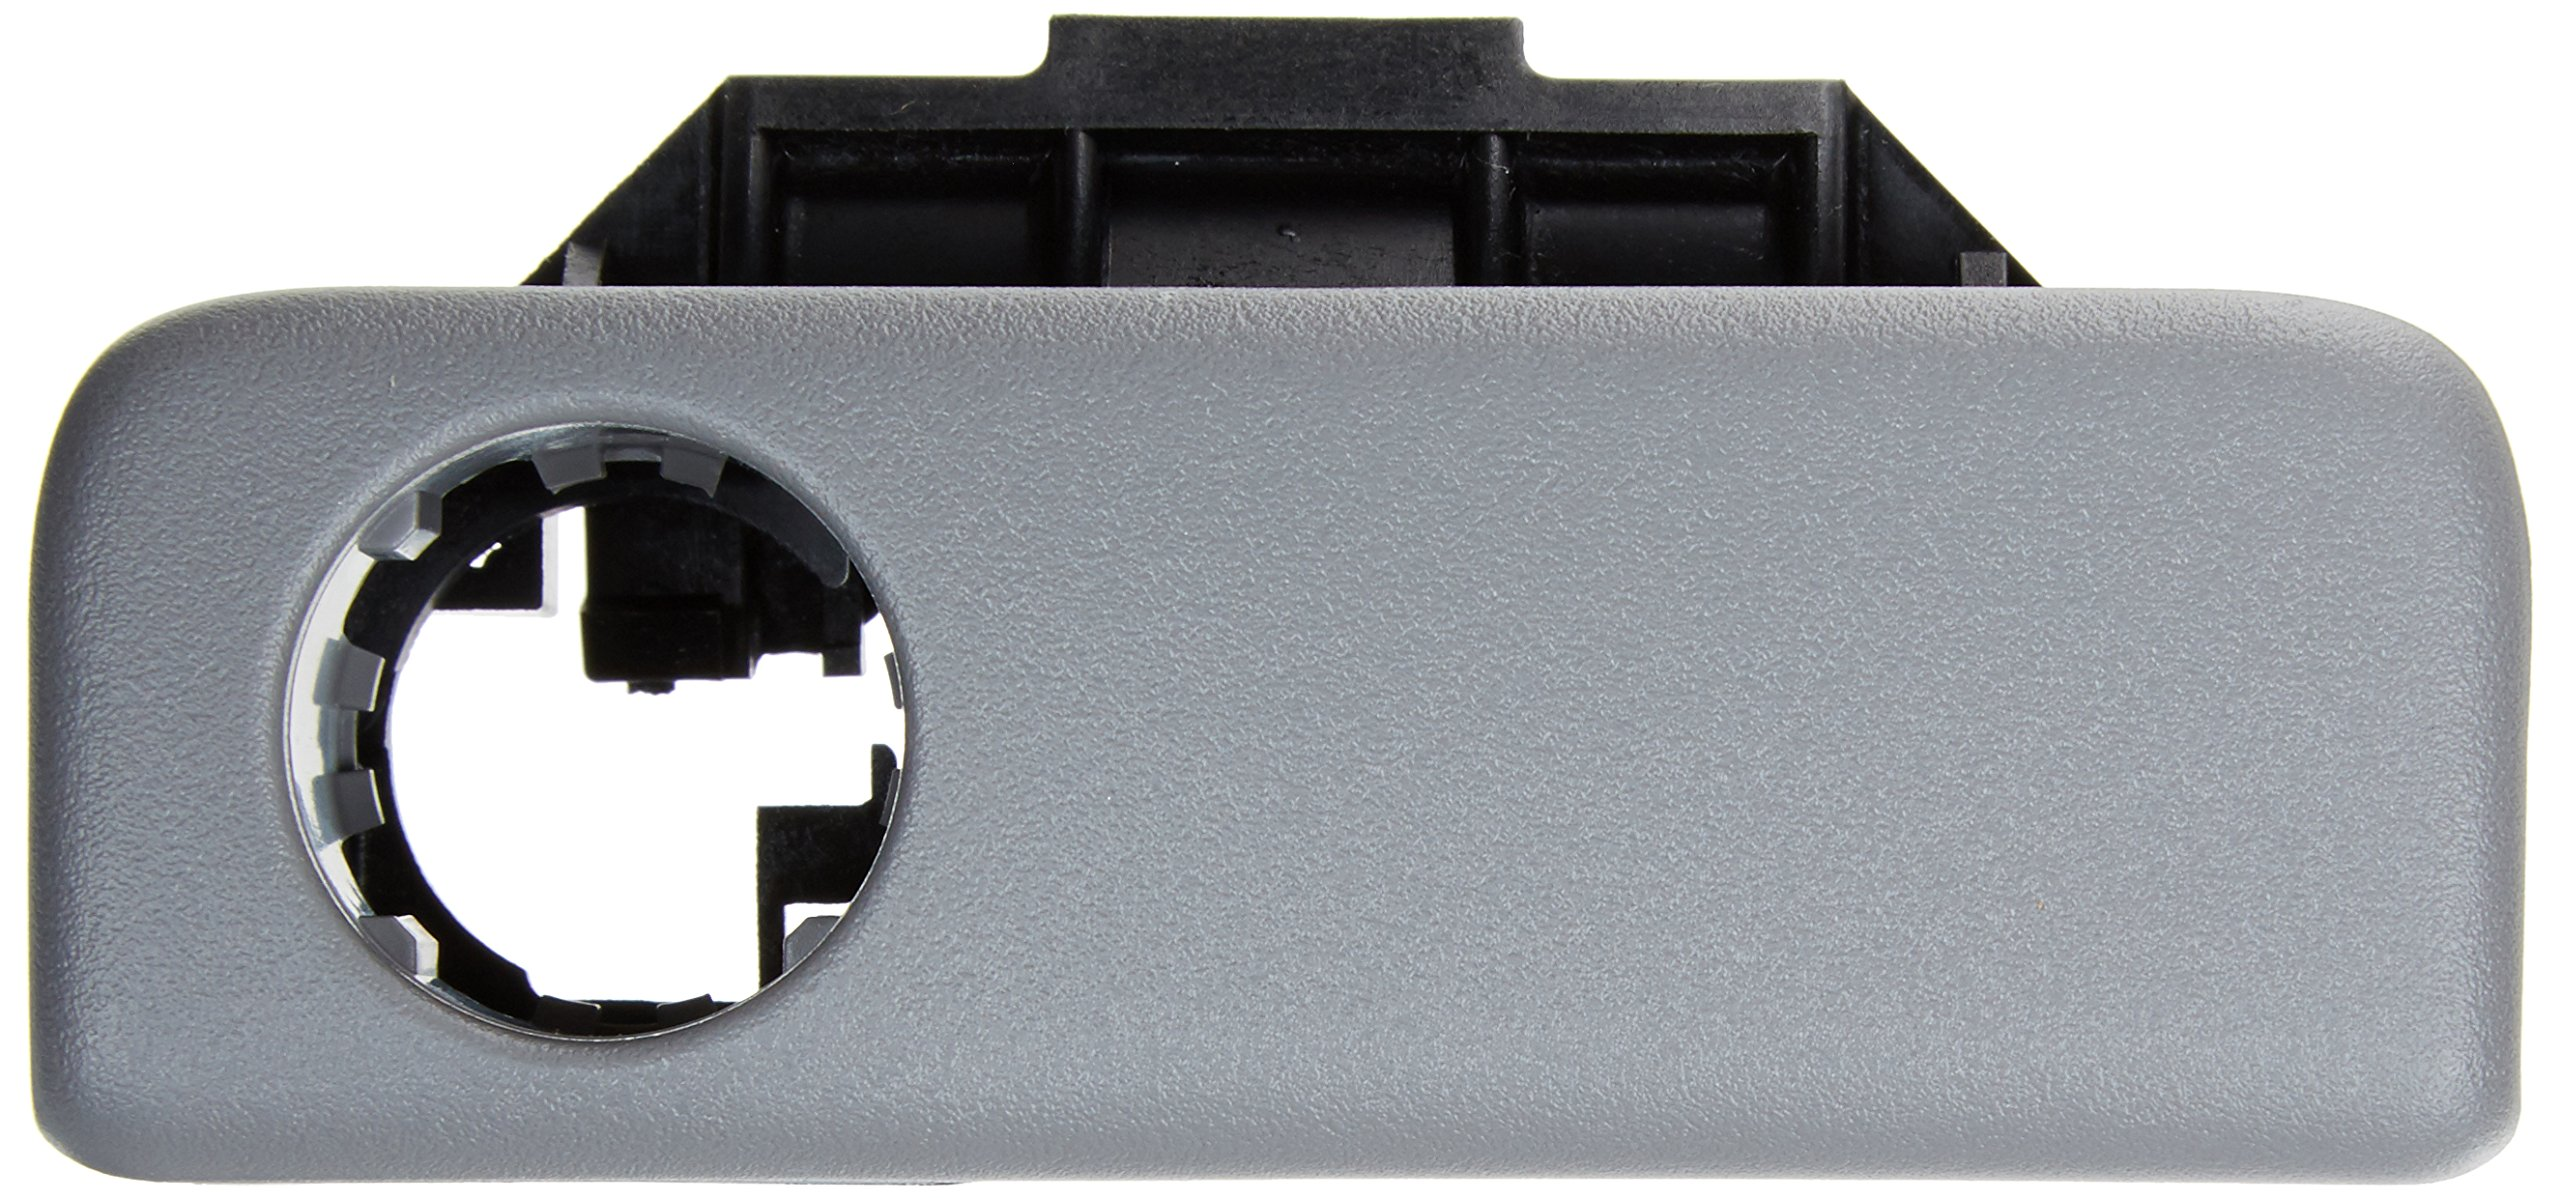 Genuine Toyota 55506-AE010-B0 Glove Box Lock Sub-Assembly by TOYOTA